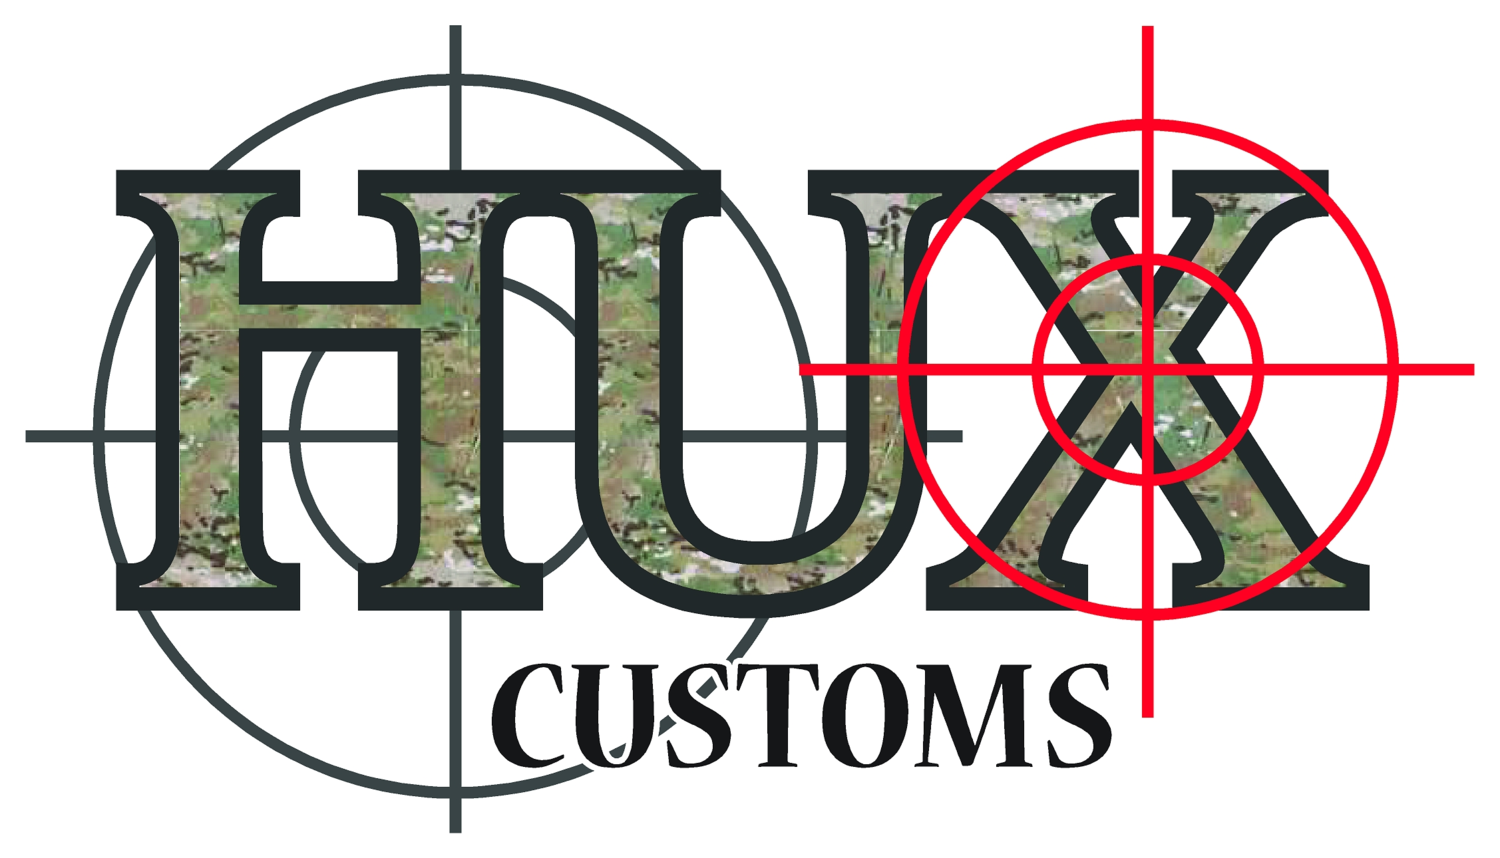 Hux Customs